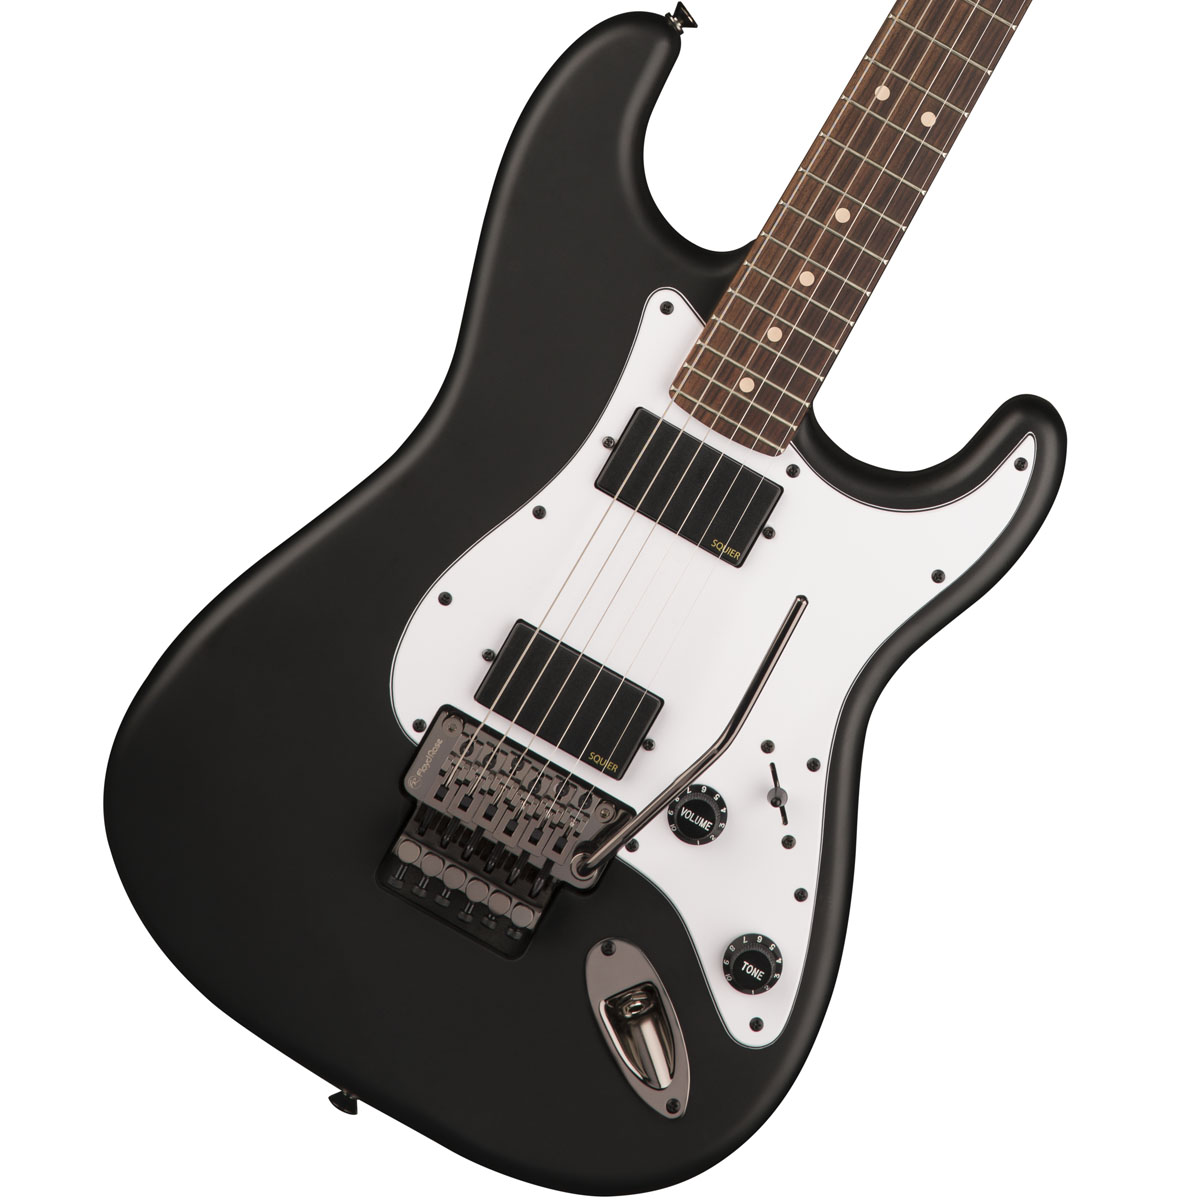 Squier by Fender / Contemporary Active Stratocaster HH Flat Black Rosewood【アウトレット新品特価】《アクセサリーセットプレゼント/+811164600》